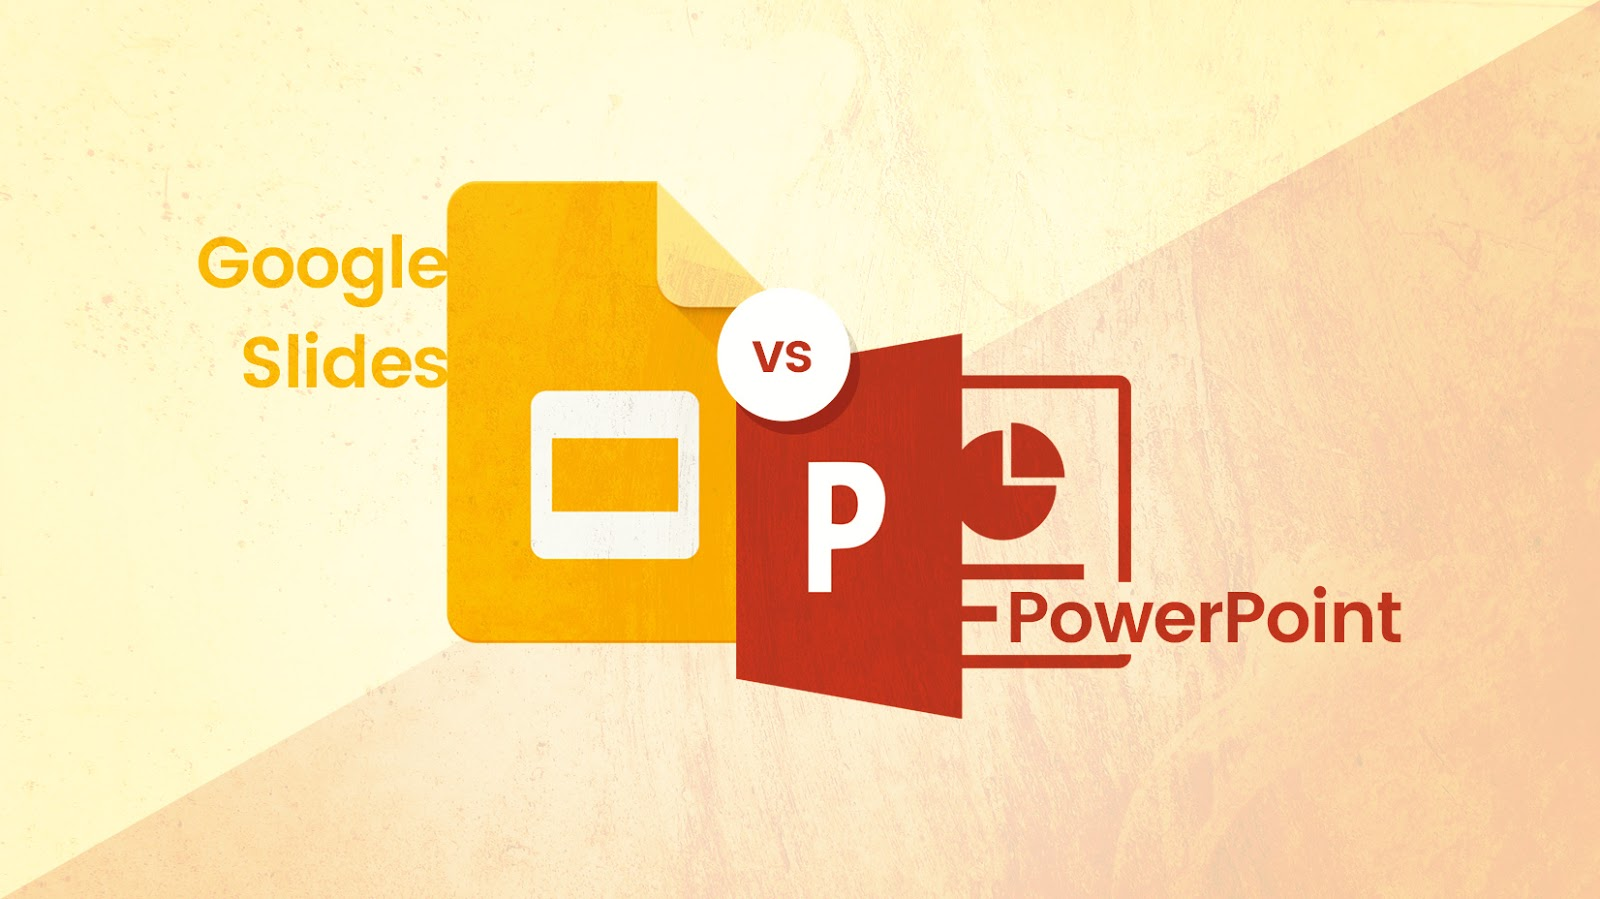 PowerPoint vs Google Slides: Which is Better?